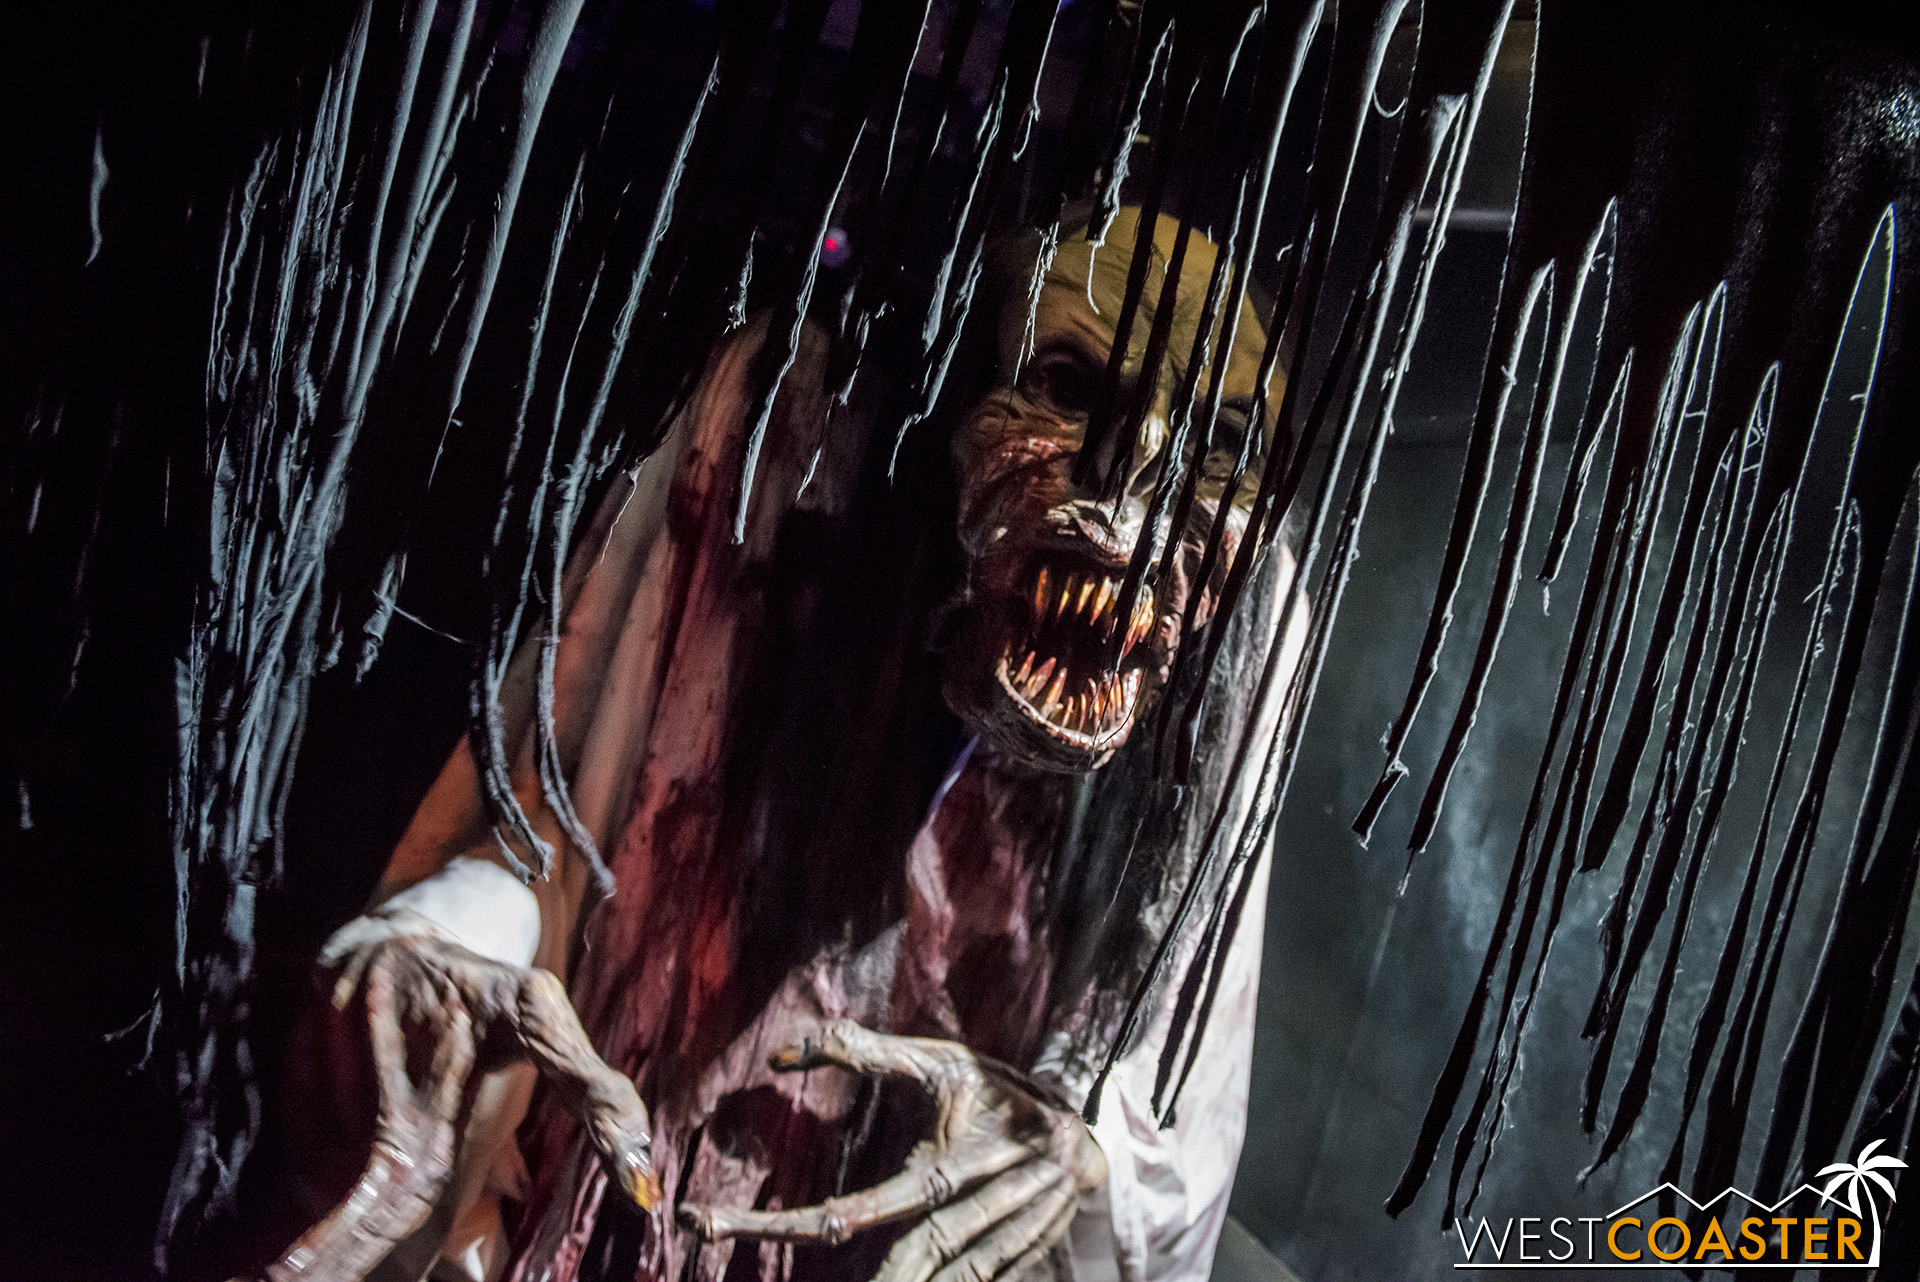 The scale of some of the scare elements is pretty impressive in Shadowlands. And even if they don't startle, they're still eagerly creepy.